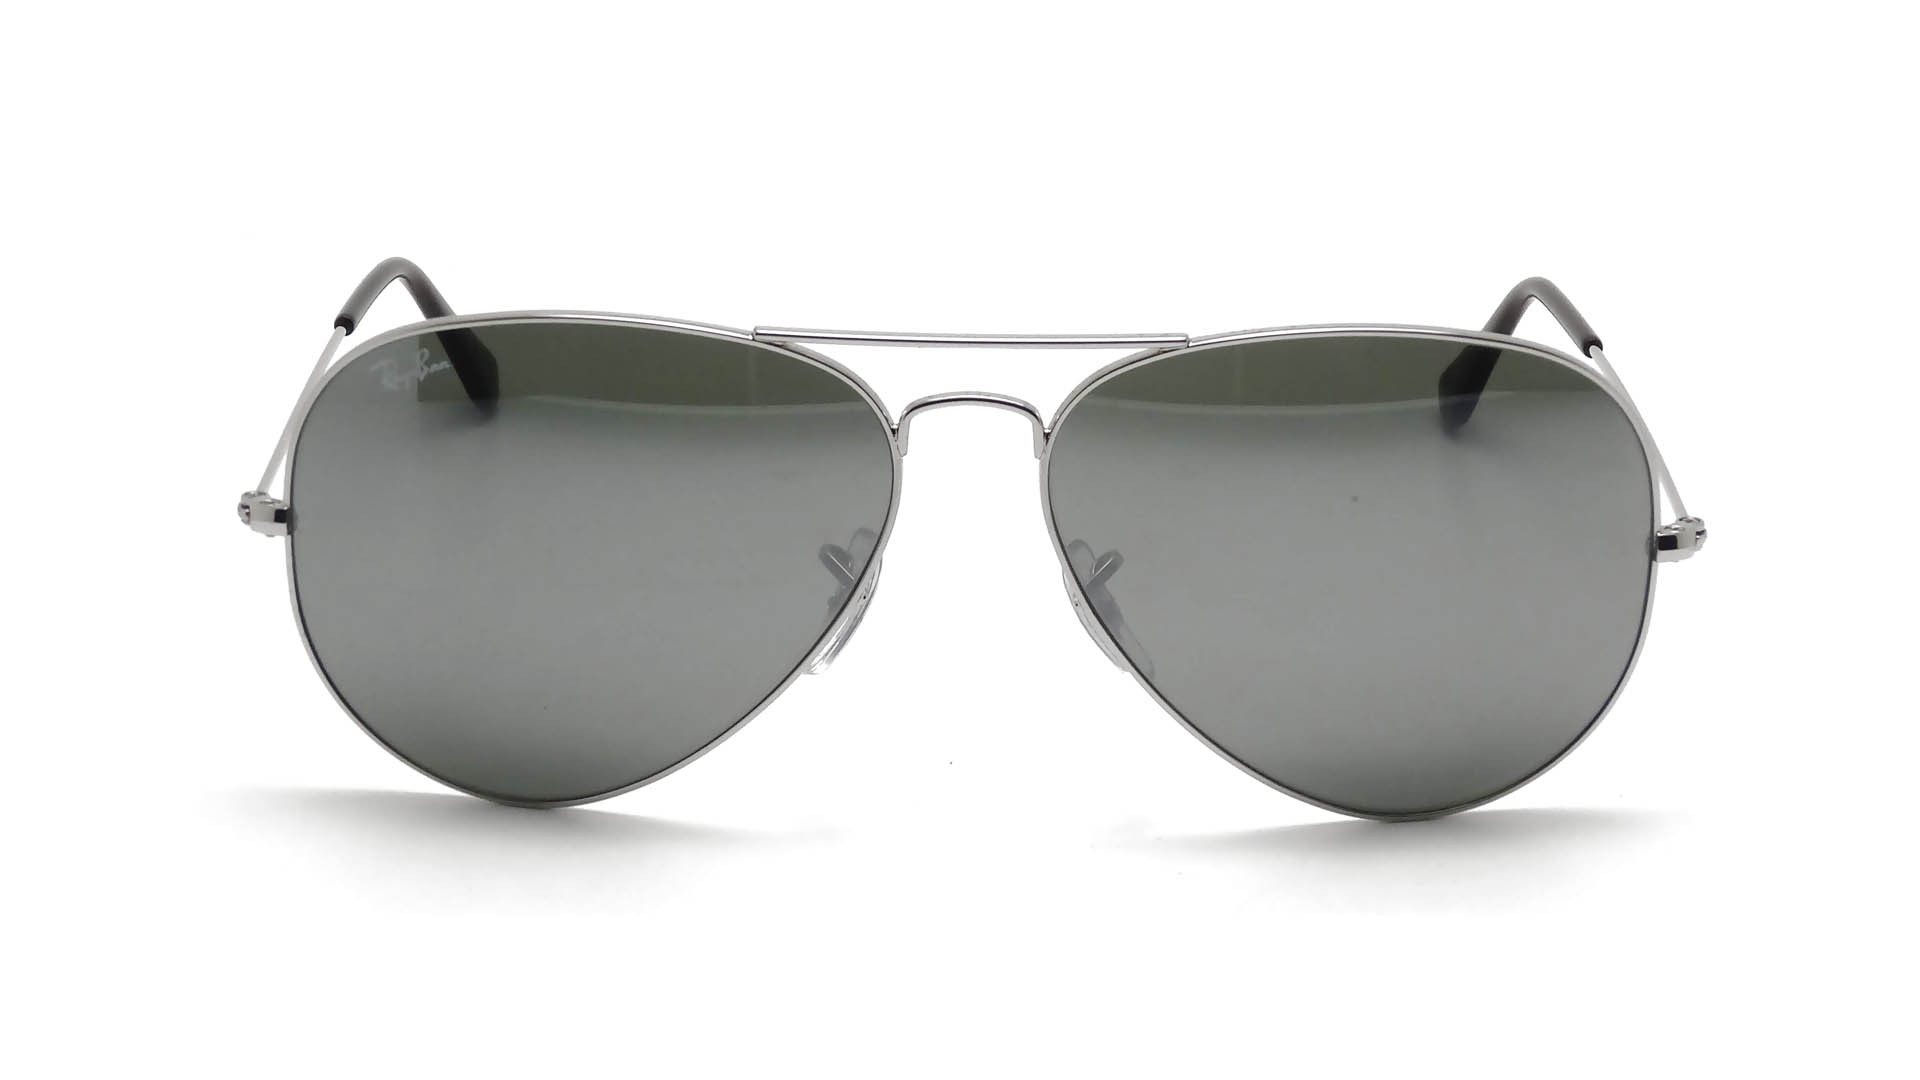 Ray ban aviator miroir argent louisiana bucket brigade for Miroir contour argent